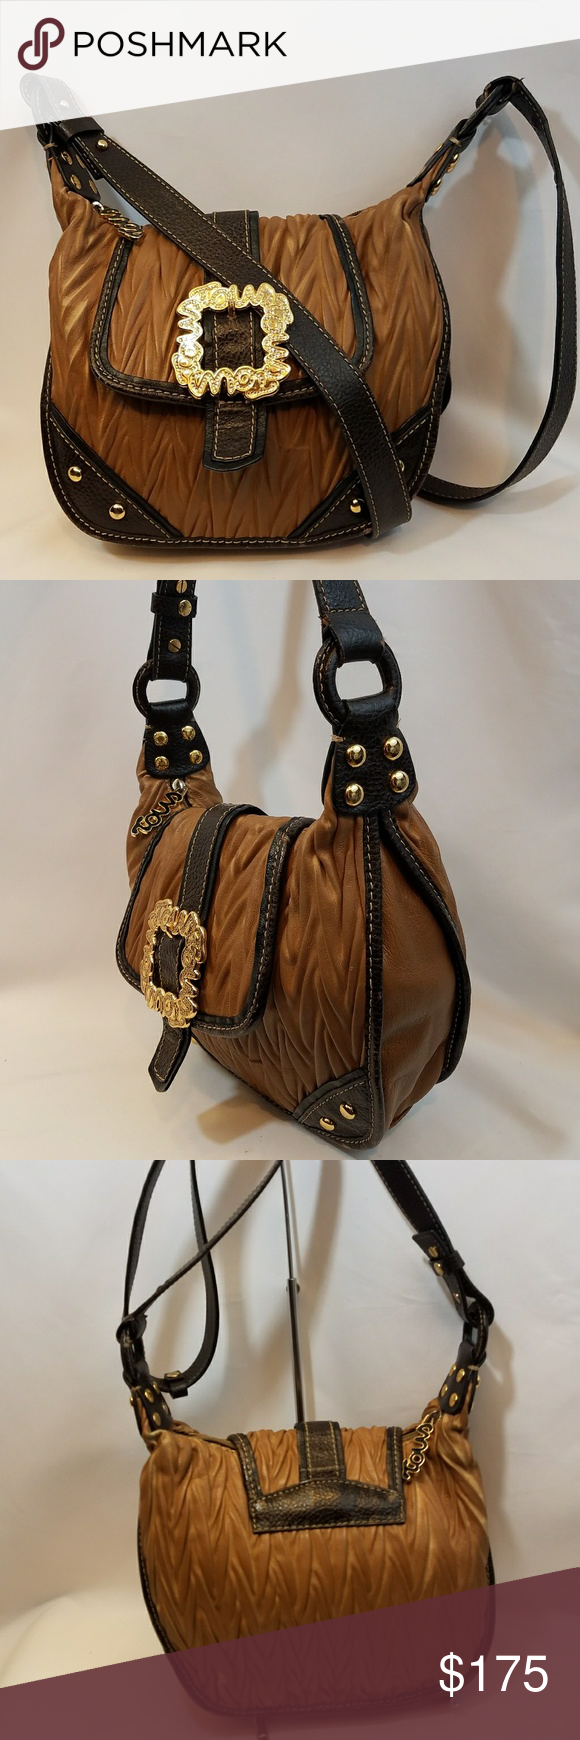 TOUS Pre-loved Leather Crossbody Bag Beautiful Pre-loved TOUS leather handbag Adjustable strap to wear on shoulder or crossbody style.   100% Authentic Tous Bags Shoulder Bags